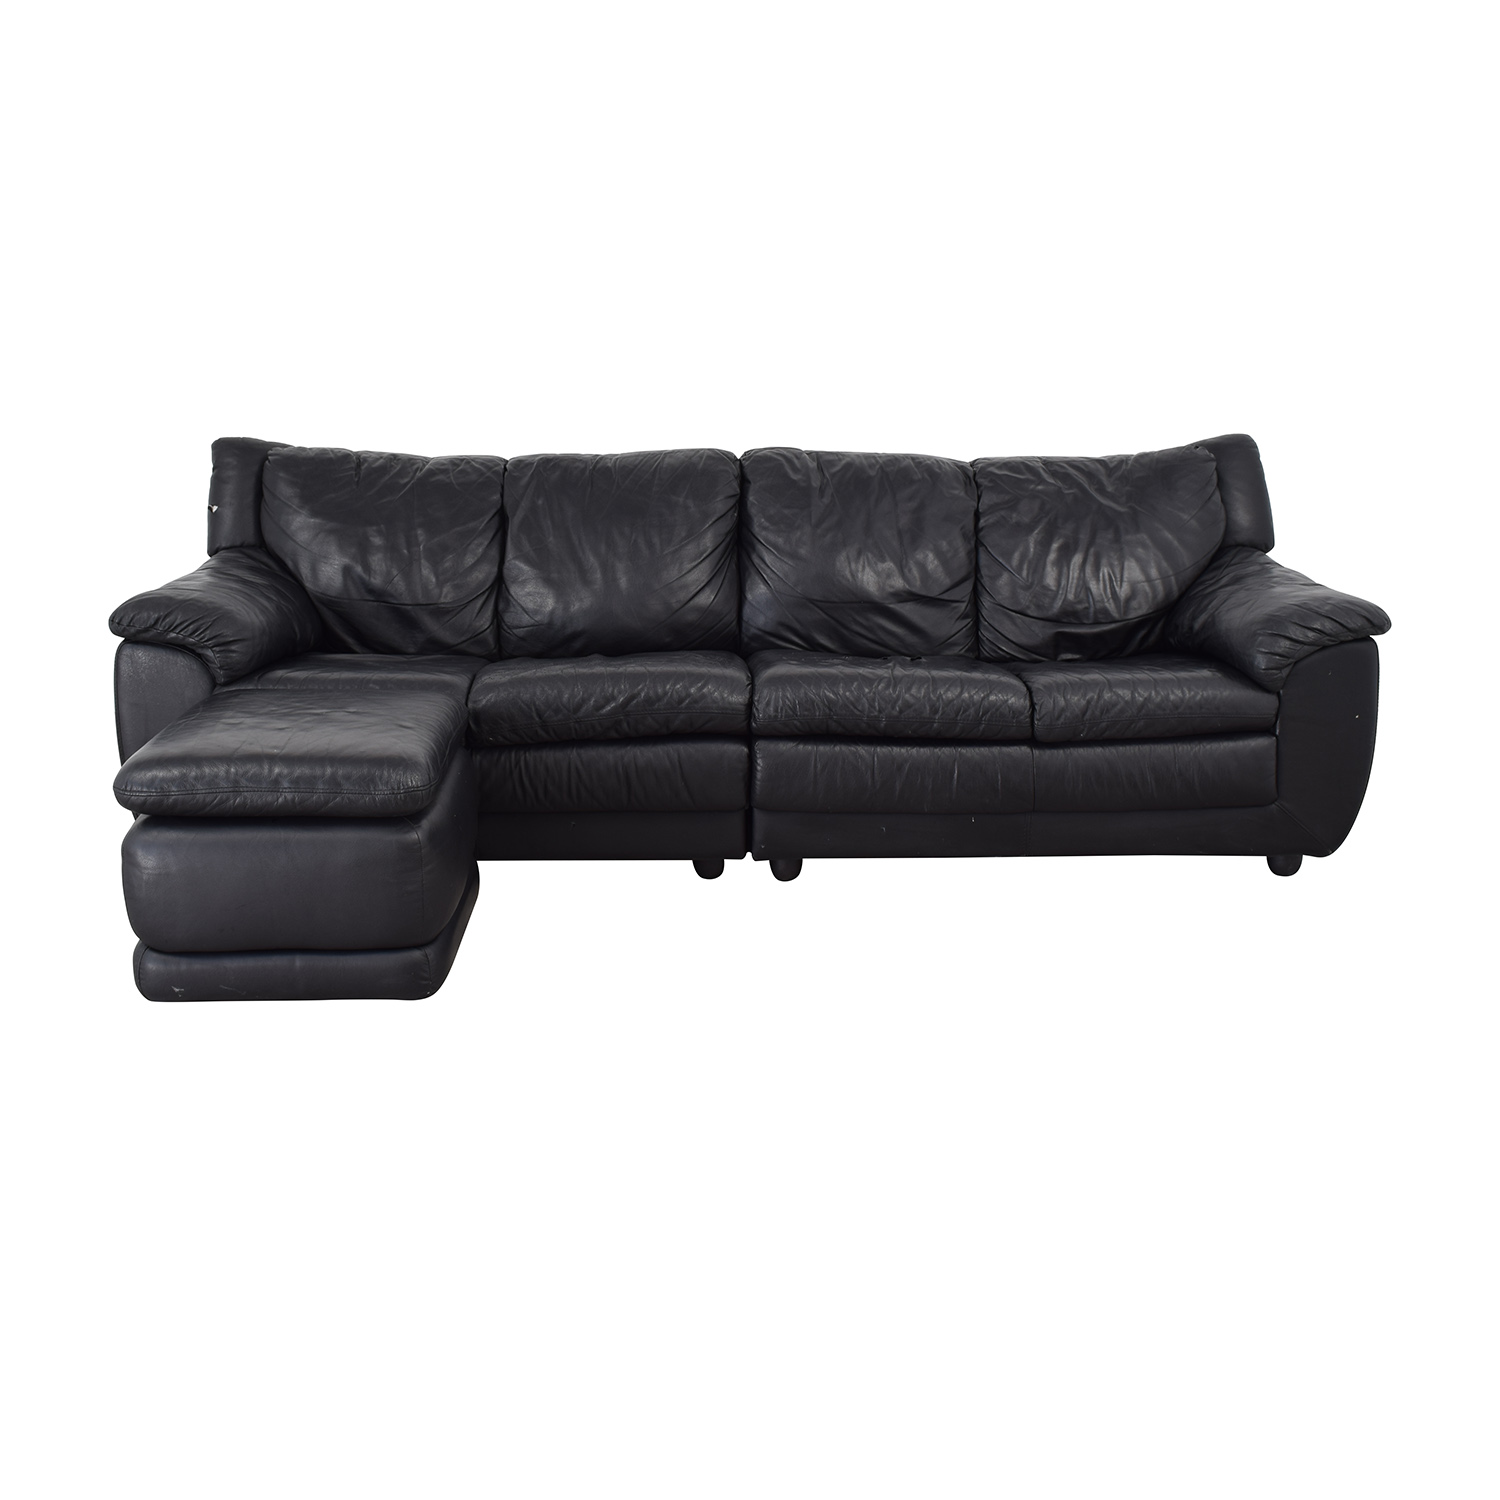 Nicoletti Home Nicoletti Home Black Four Cushion Couch with Ottoman used